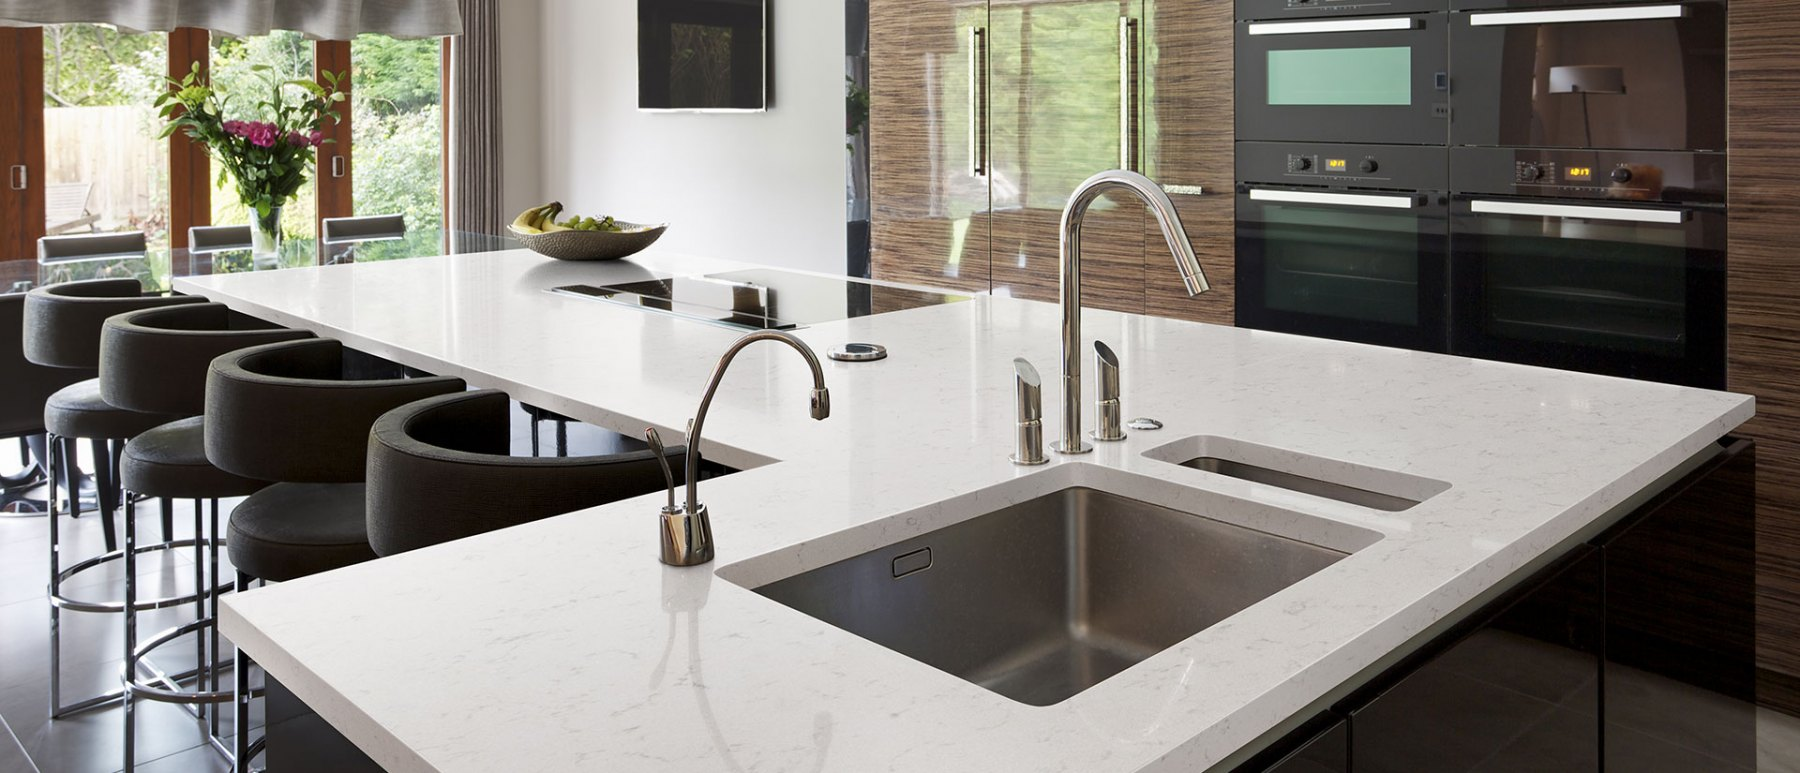 new-carrara-marmi-quartz-2